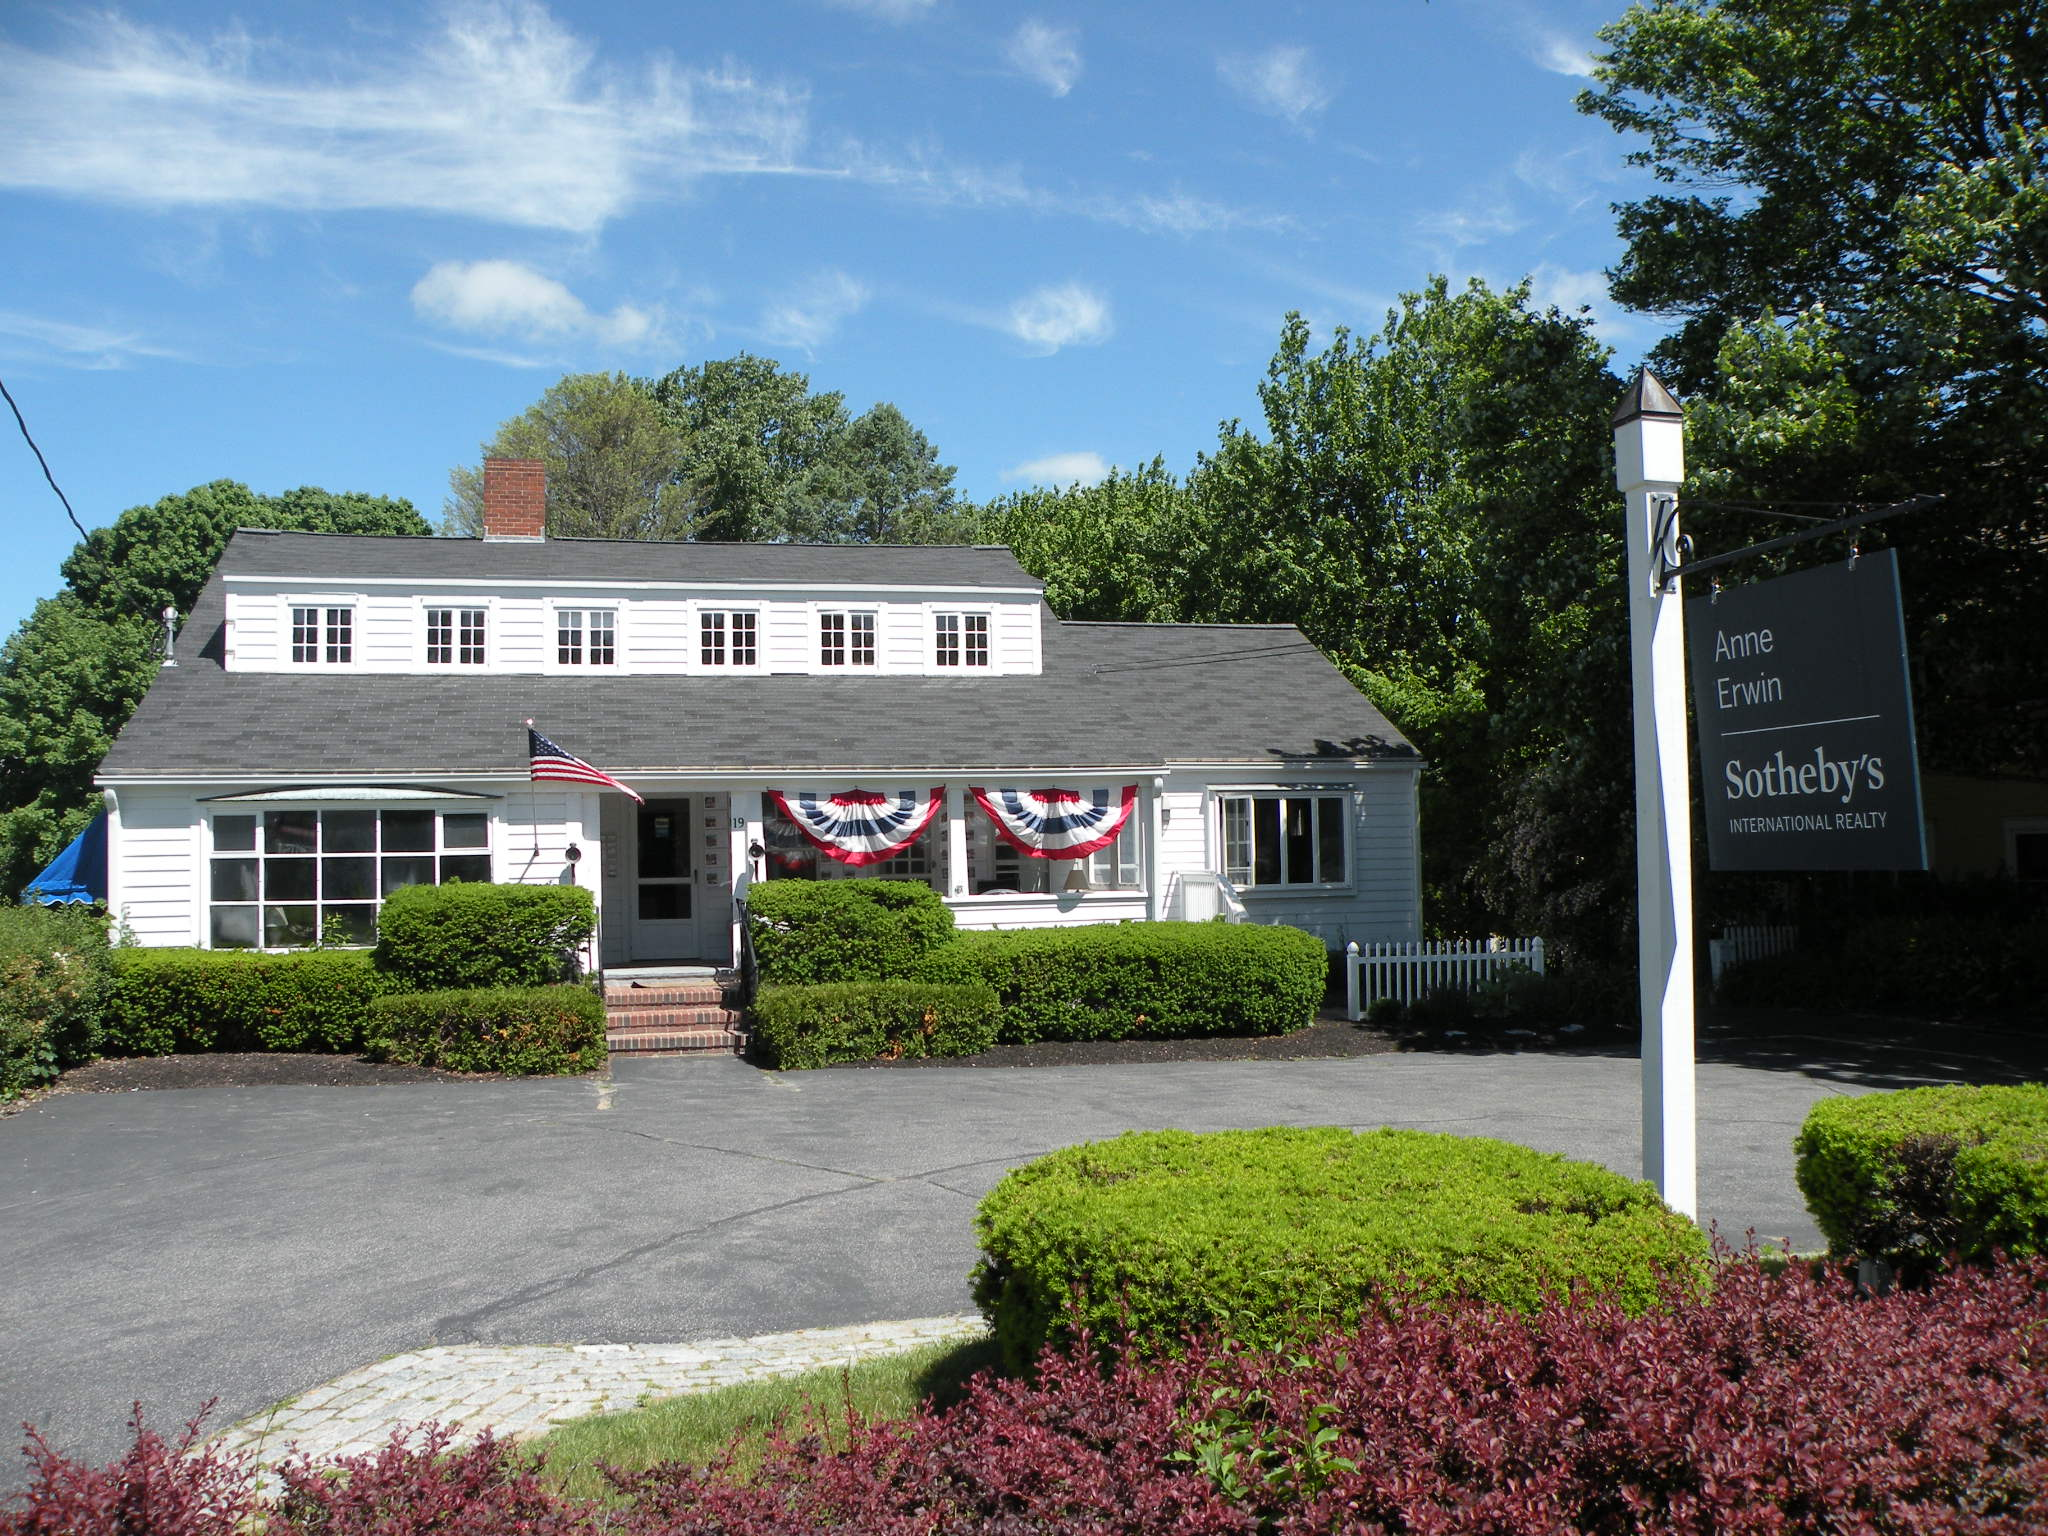 anne erwin sotheby's international realty office - ogunquit